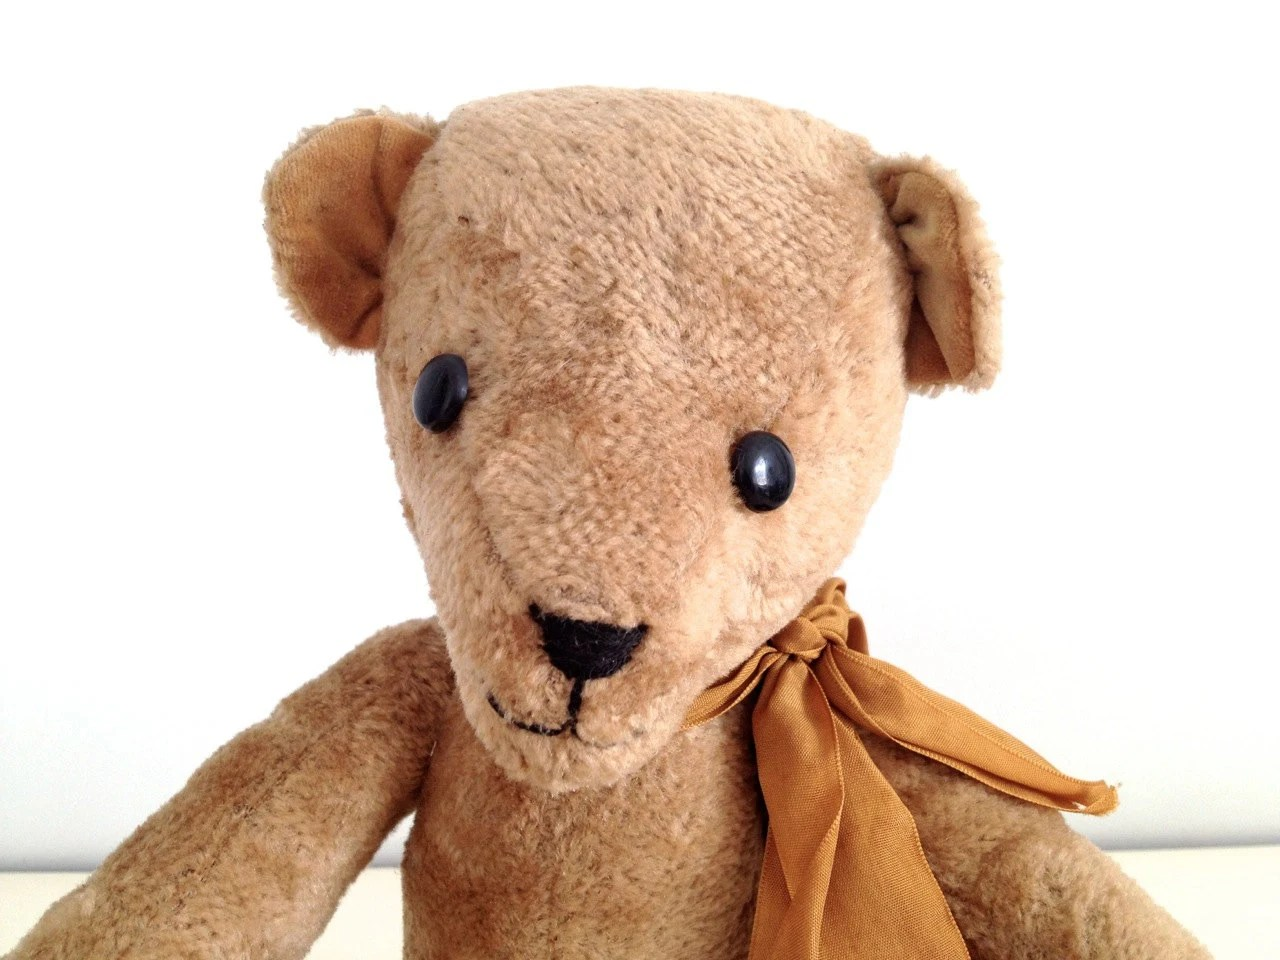 Australian Made Teddy Bears Vintage Teddy Bear Jointed Hand Made In Australia By